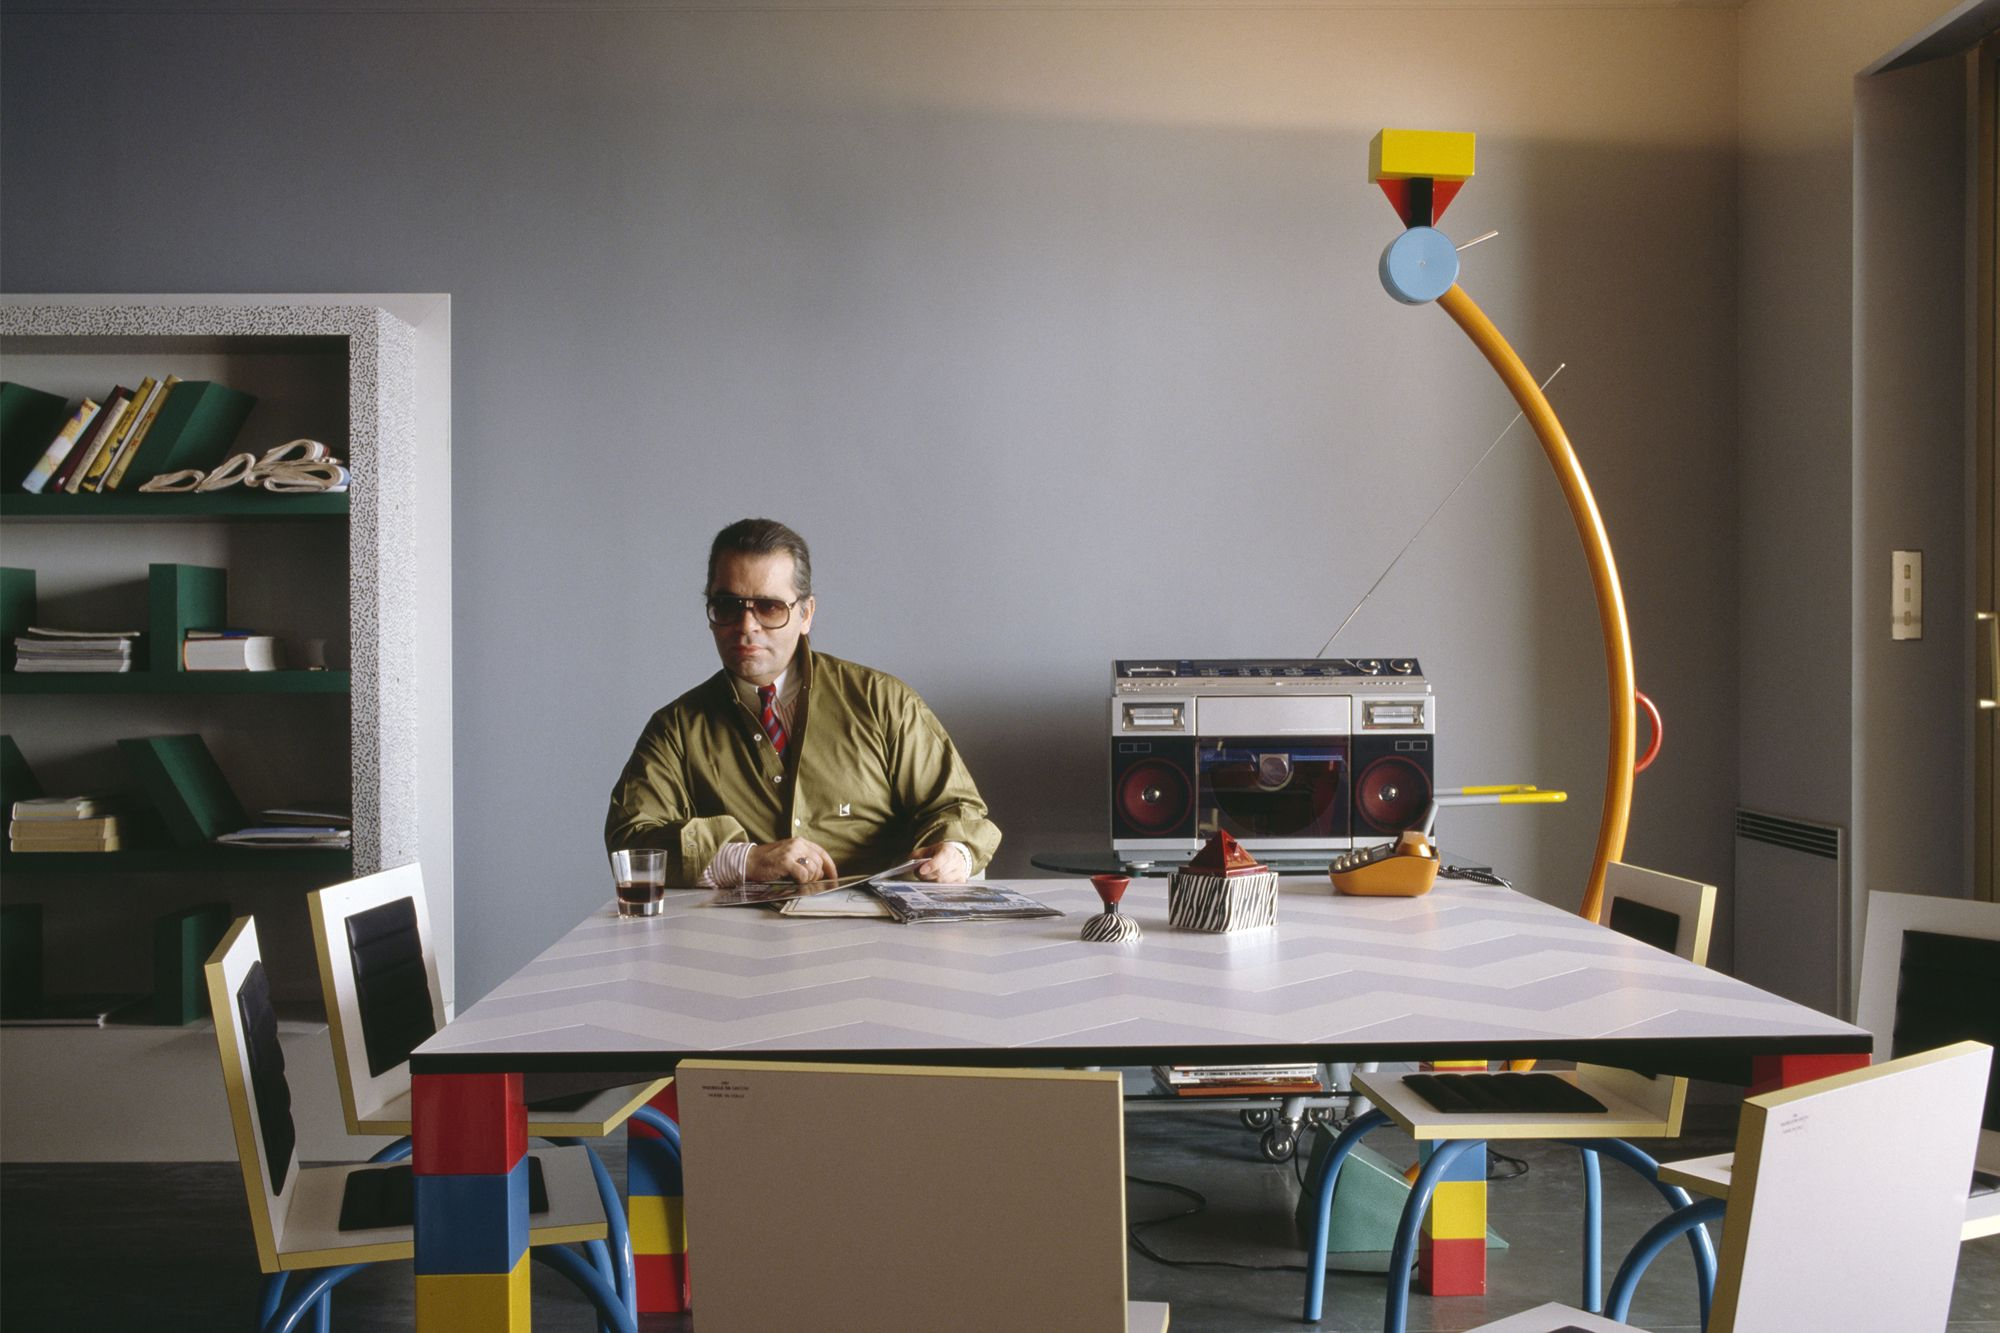 Karl Lagerfeld is said to be one of the collective's biggest fan; he even had an apartment full of his salient Memphis collection Photo: Courtesy of Vitra Design Museum